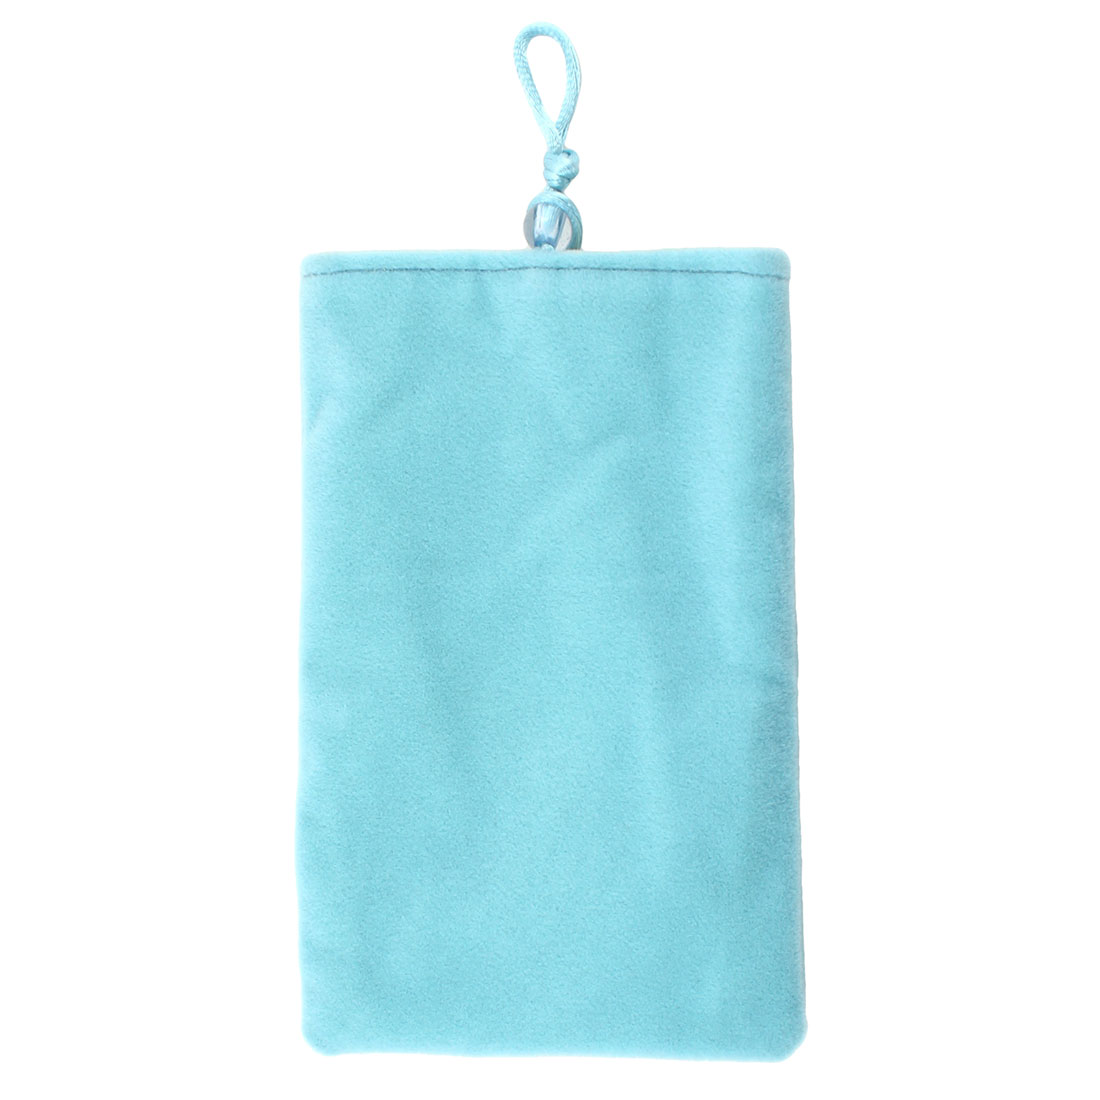 Bead Button Closure Pale Blue Flannel Mobile Phone Pouch Case